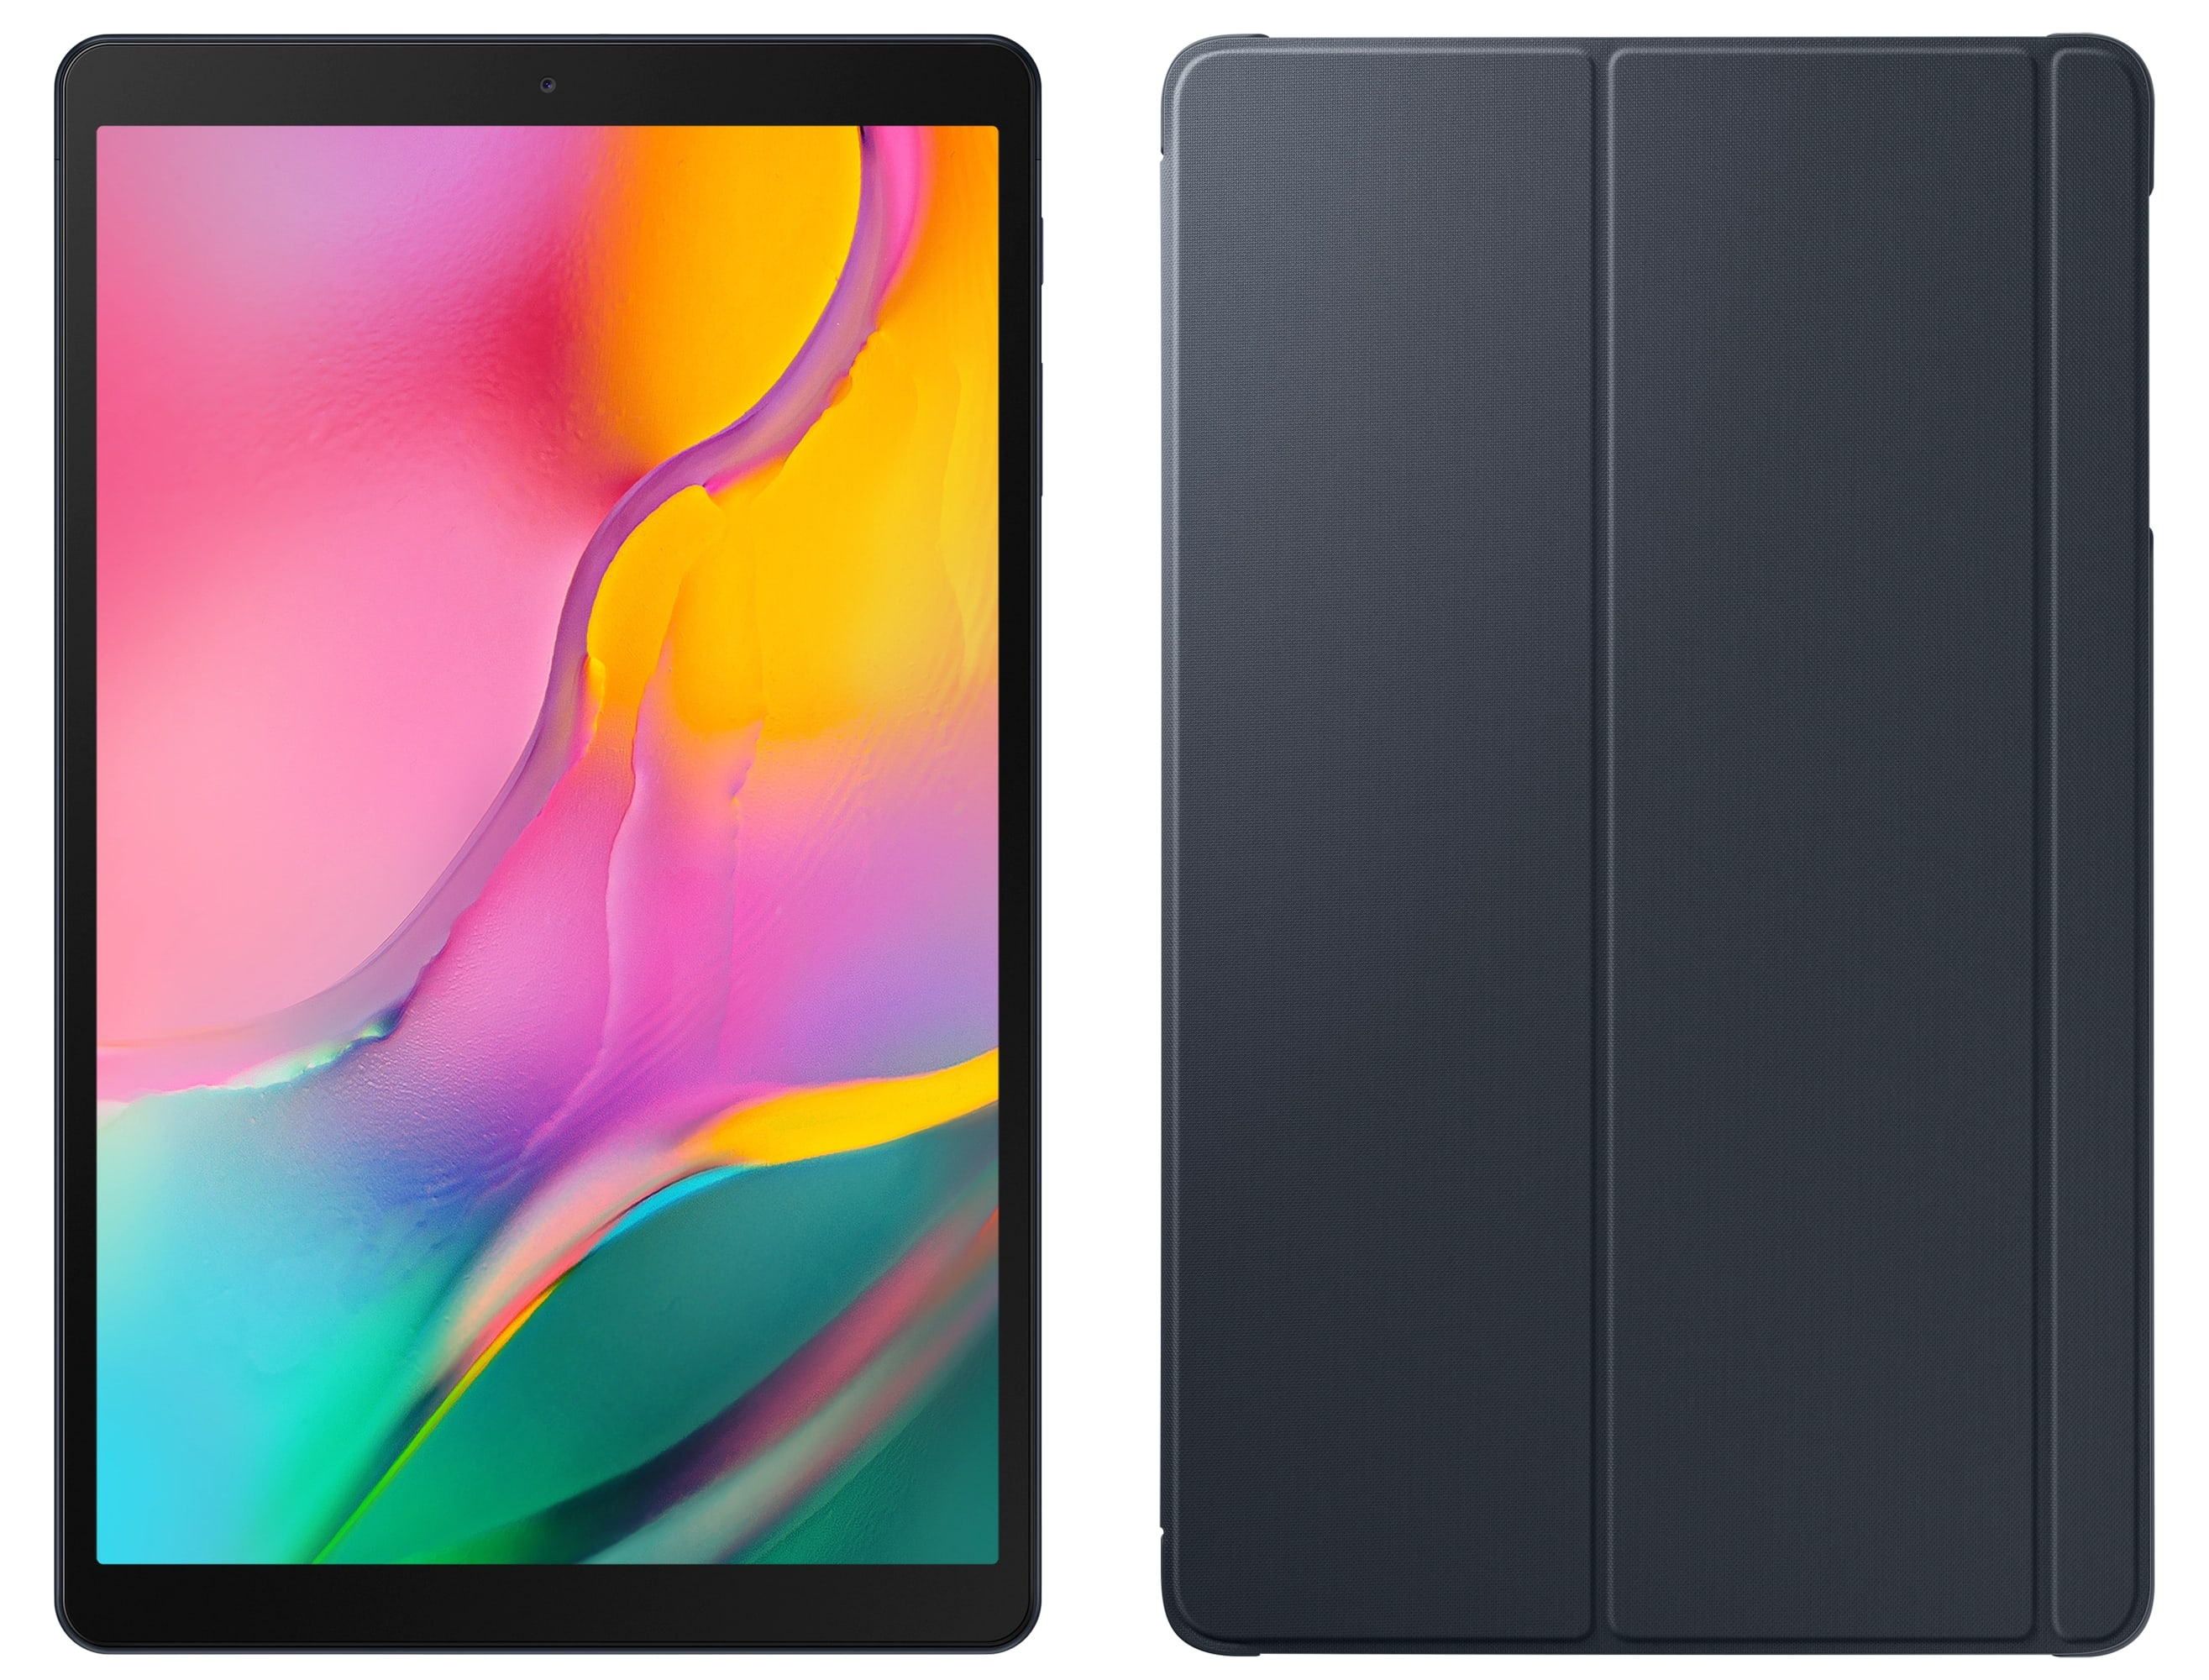 Samsung Galaxy Tab A 10,1' WiFi (2019) Tablet inkl. Book cover und Powerbank 10,1 Zoll 64 GB 1,6 GHz Octacore 3 GB Android 9.0 für 222,22 Euro